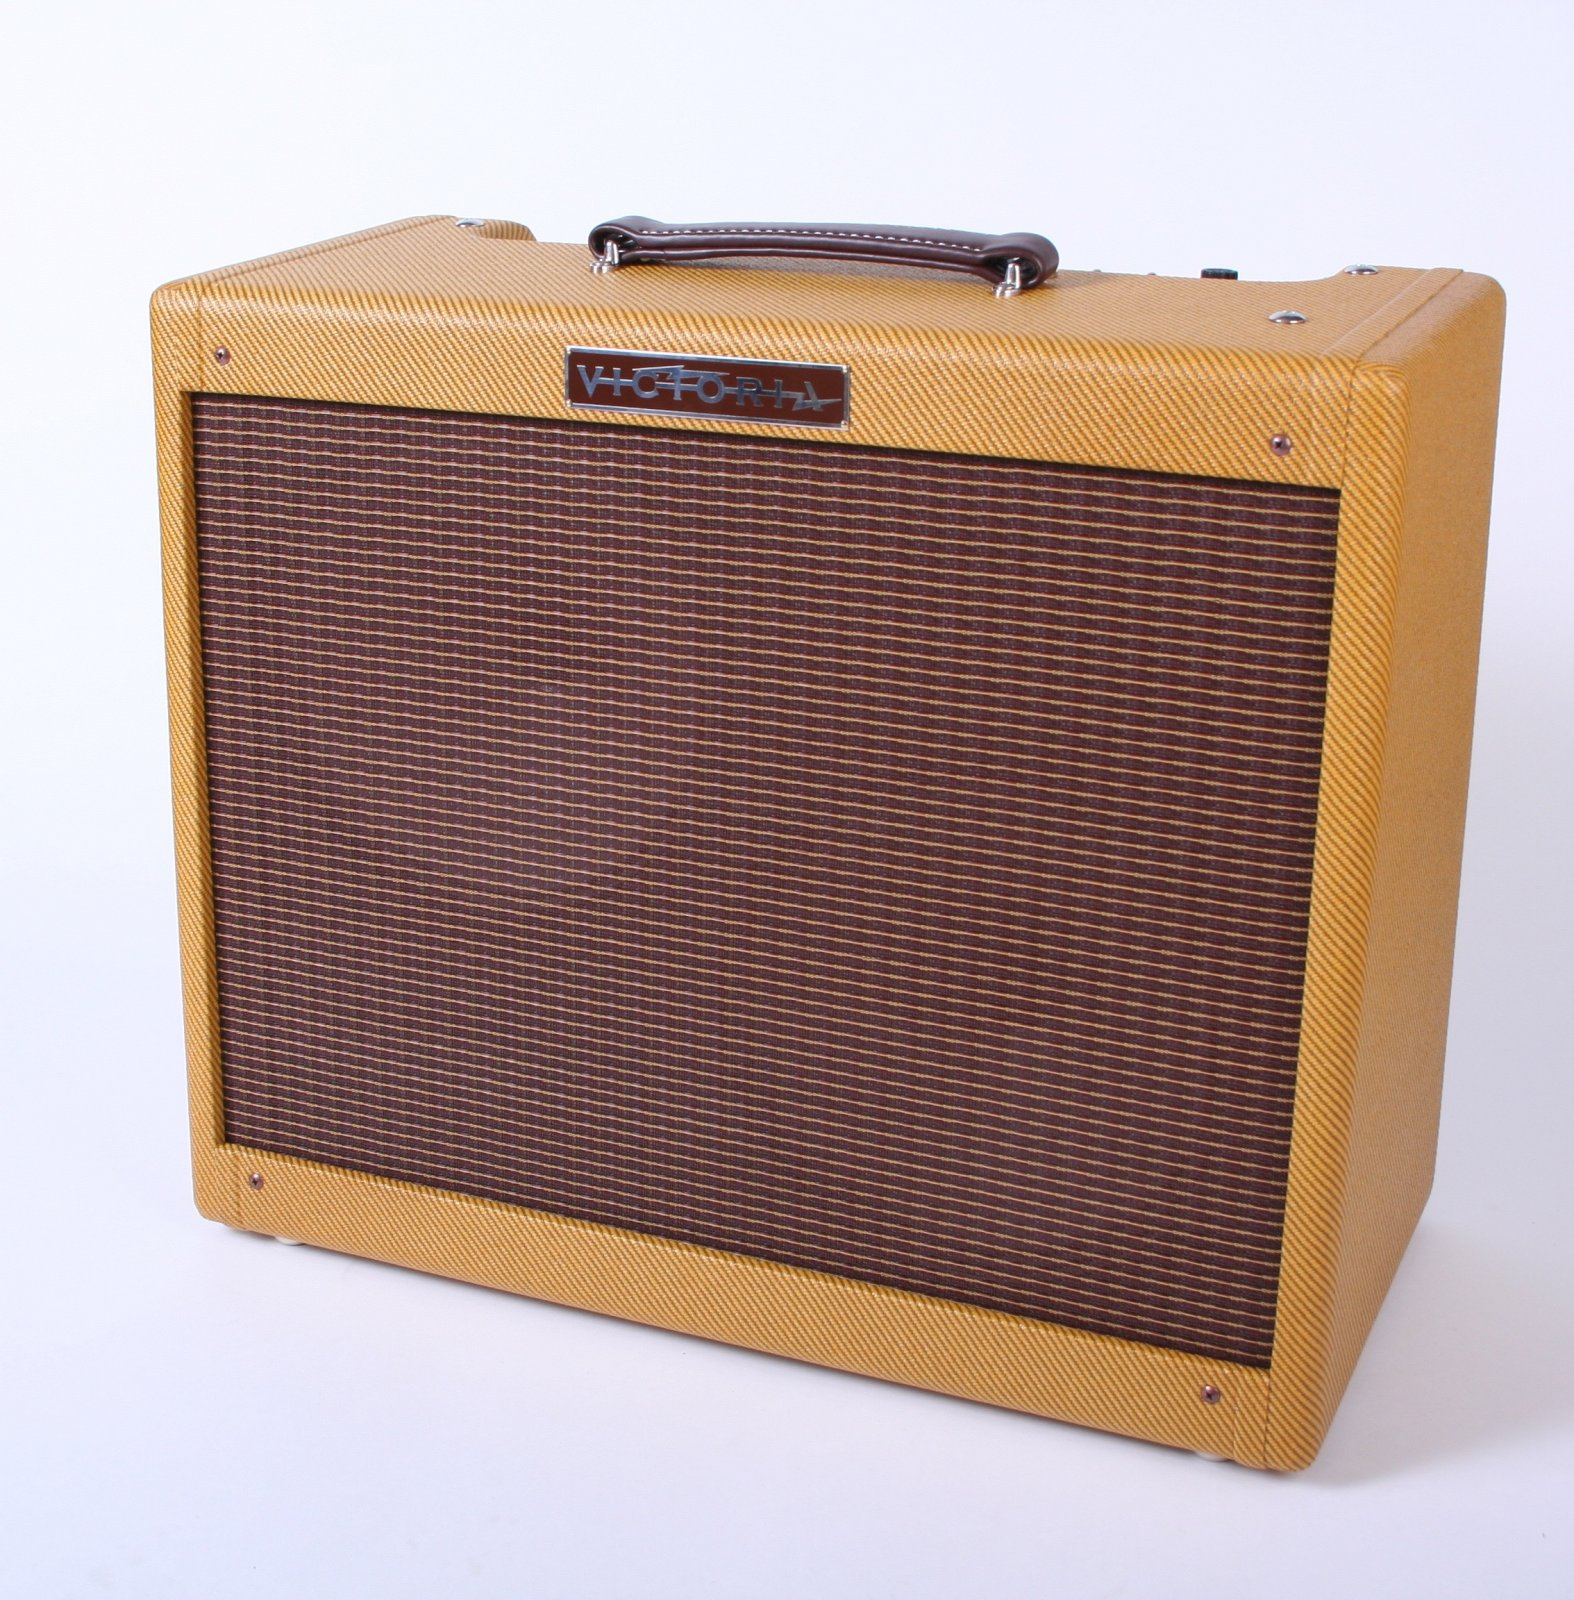 Victoria Amplifier Co 35210 5F4 Style